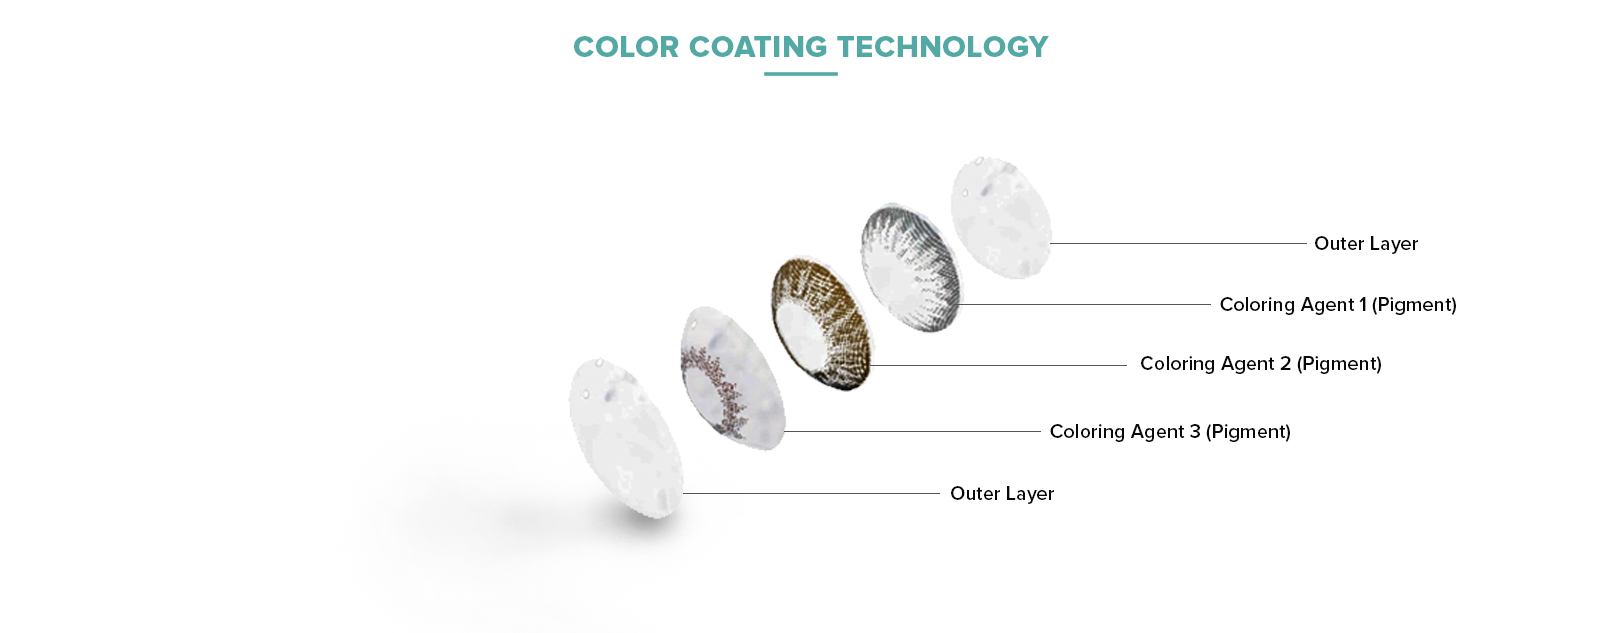 color-coating-technology.jpg